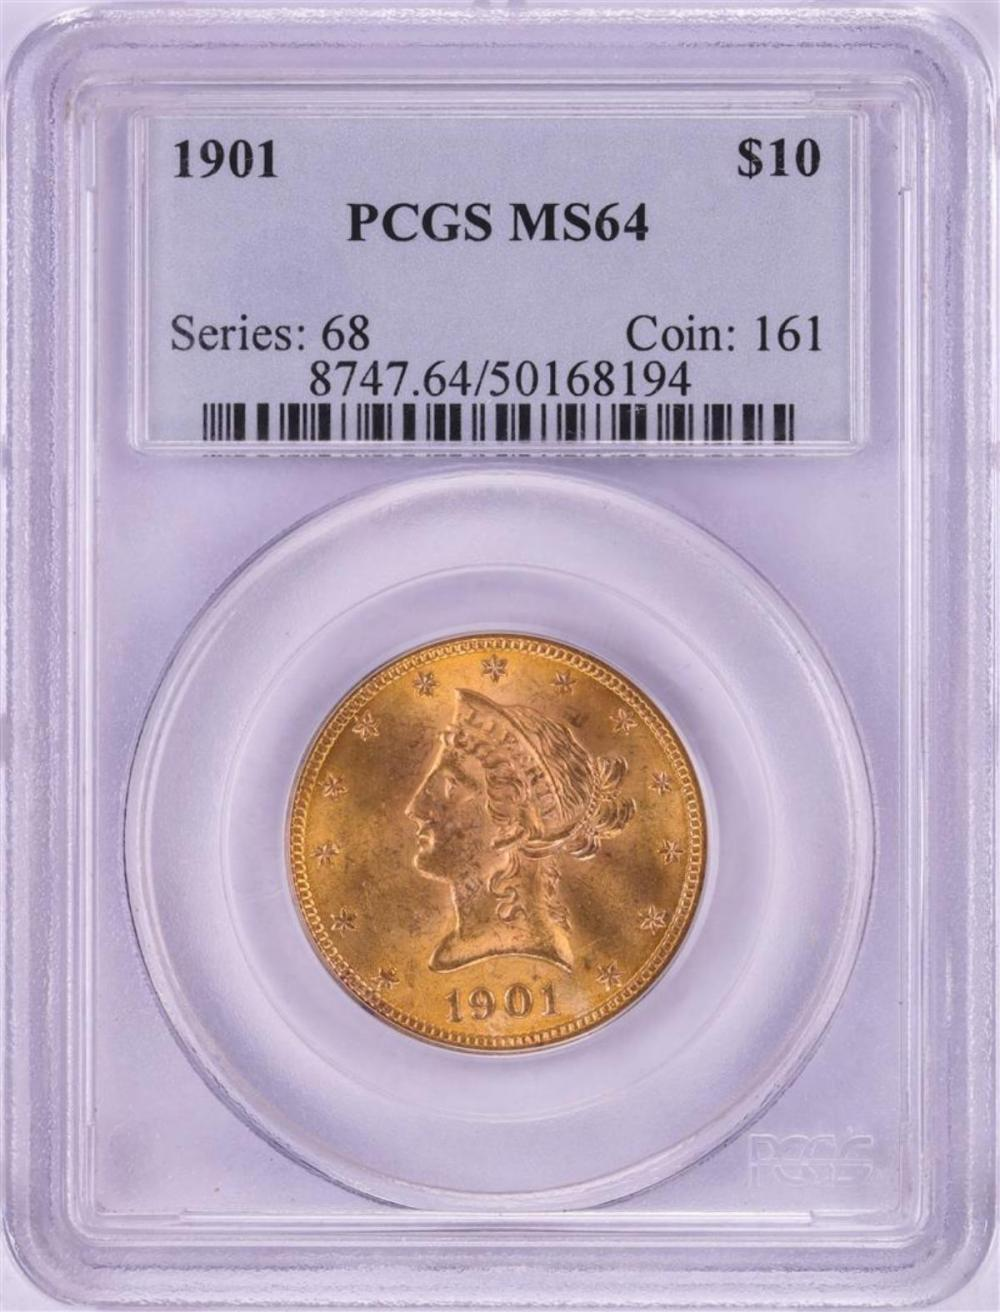 1901 $10 Liberty Head Eagle Gold Coin PCGS MS64